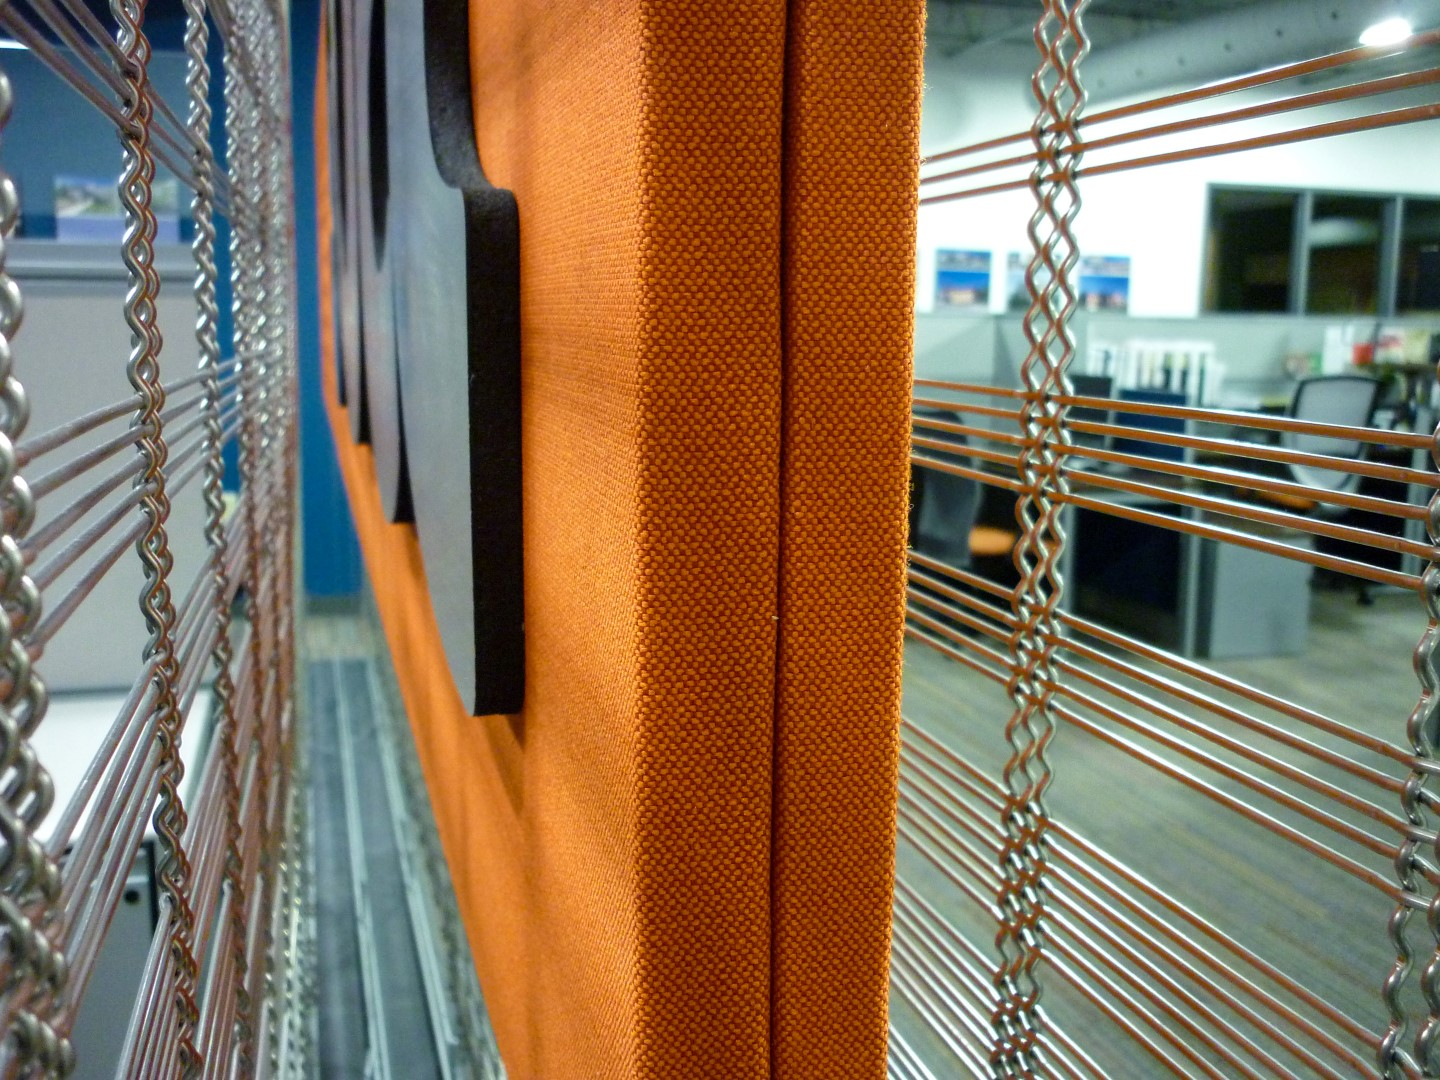 The sign component, fabricated of a sandwich of two sound absorbing panels, occupies the space in between the two panels of woven wire mesh.